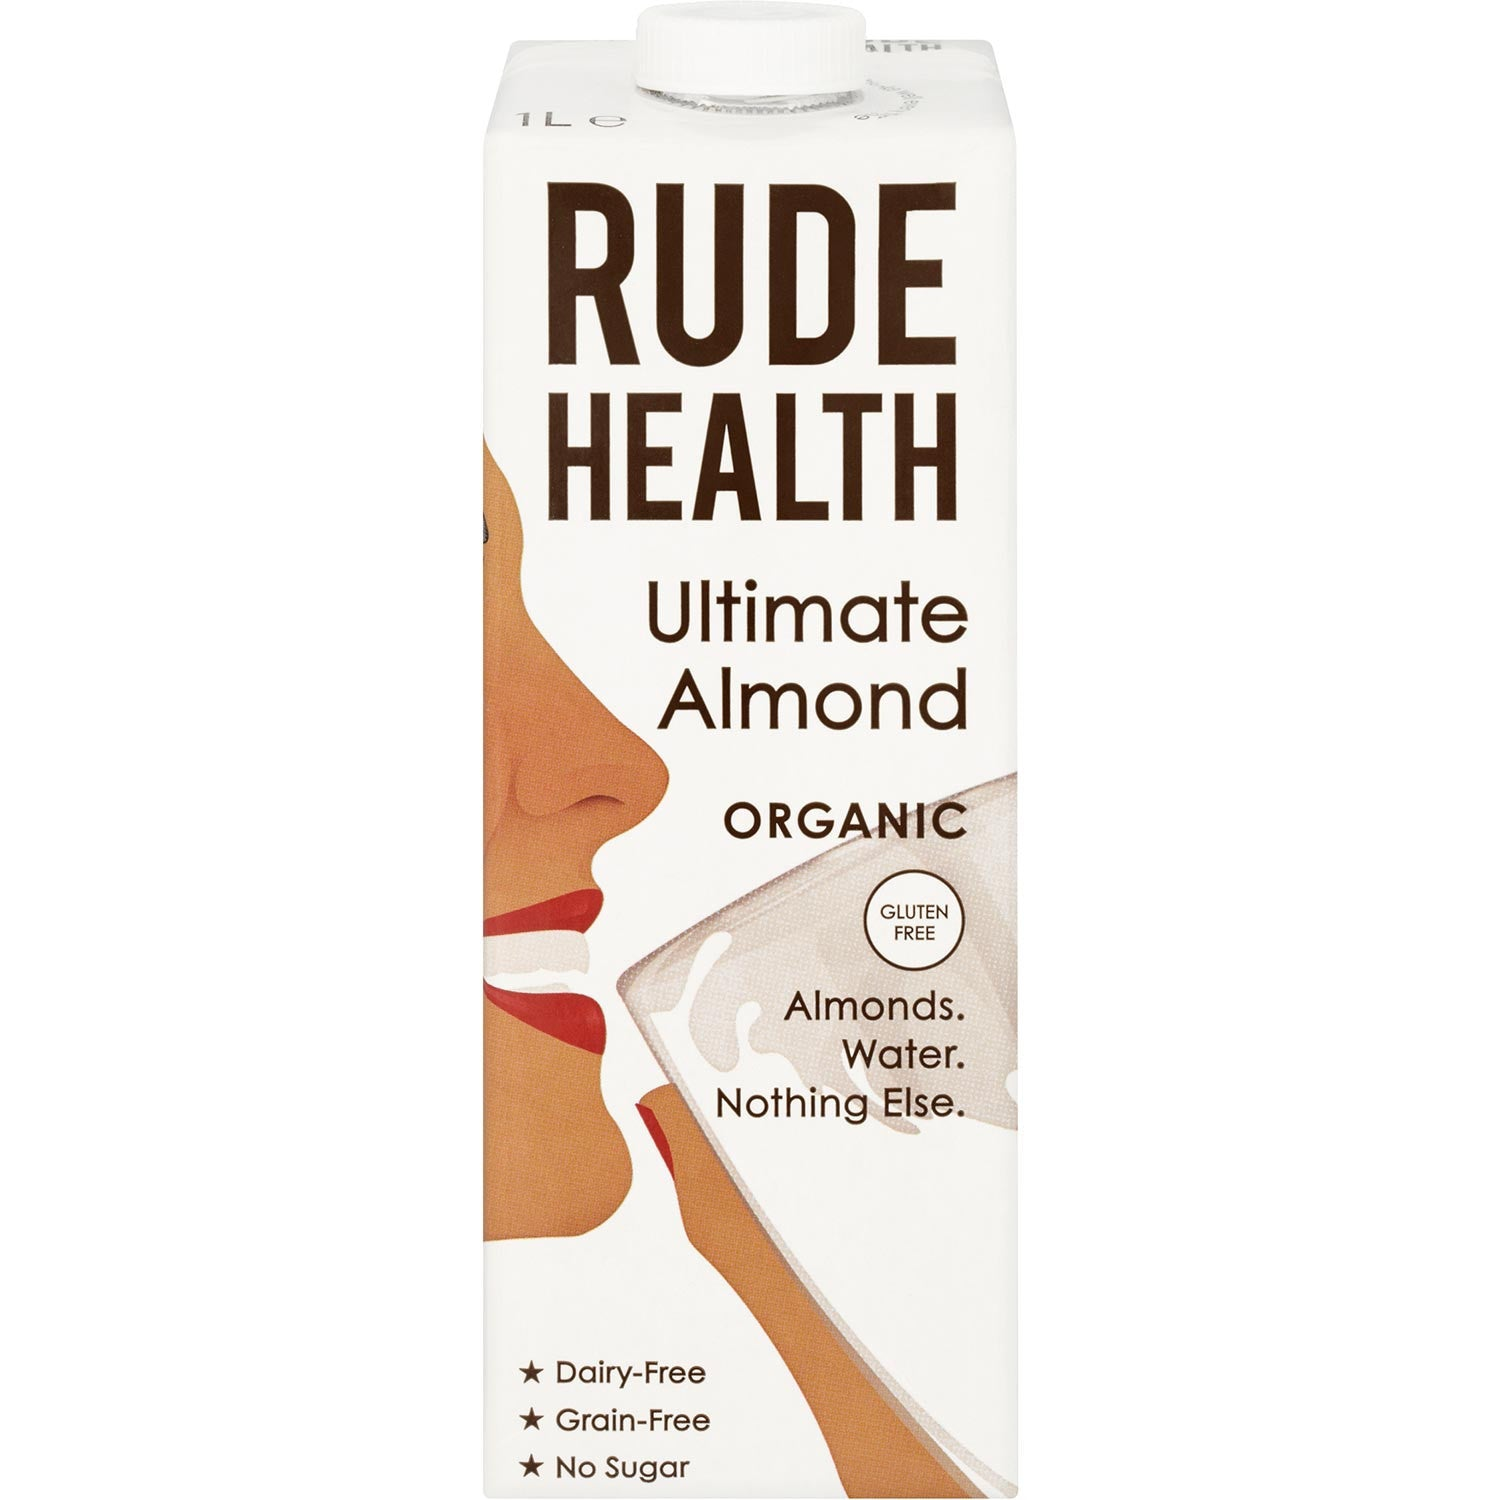 Rude Health Organic Dairy-free Drink - Ultimate Almond (Gluten Free), 1L.-NaturesWisdom